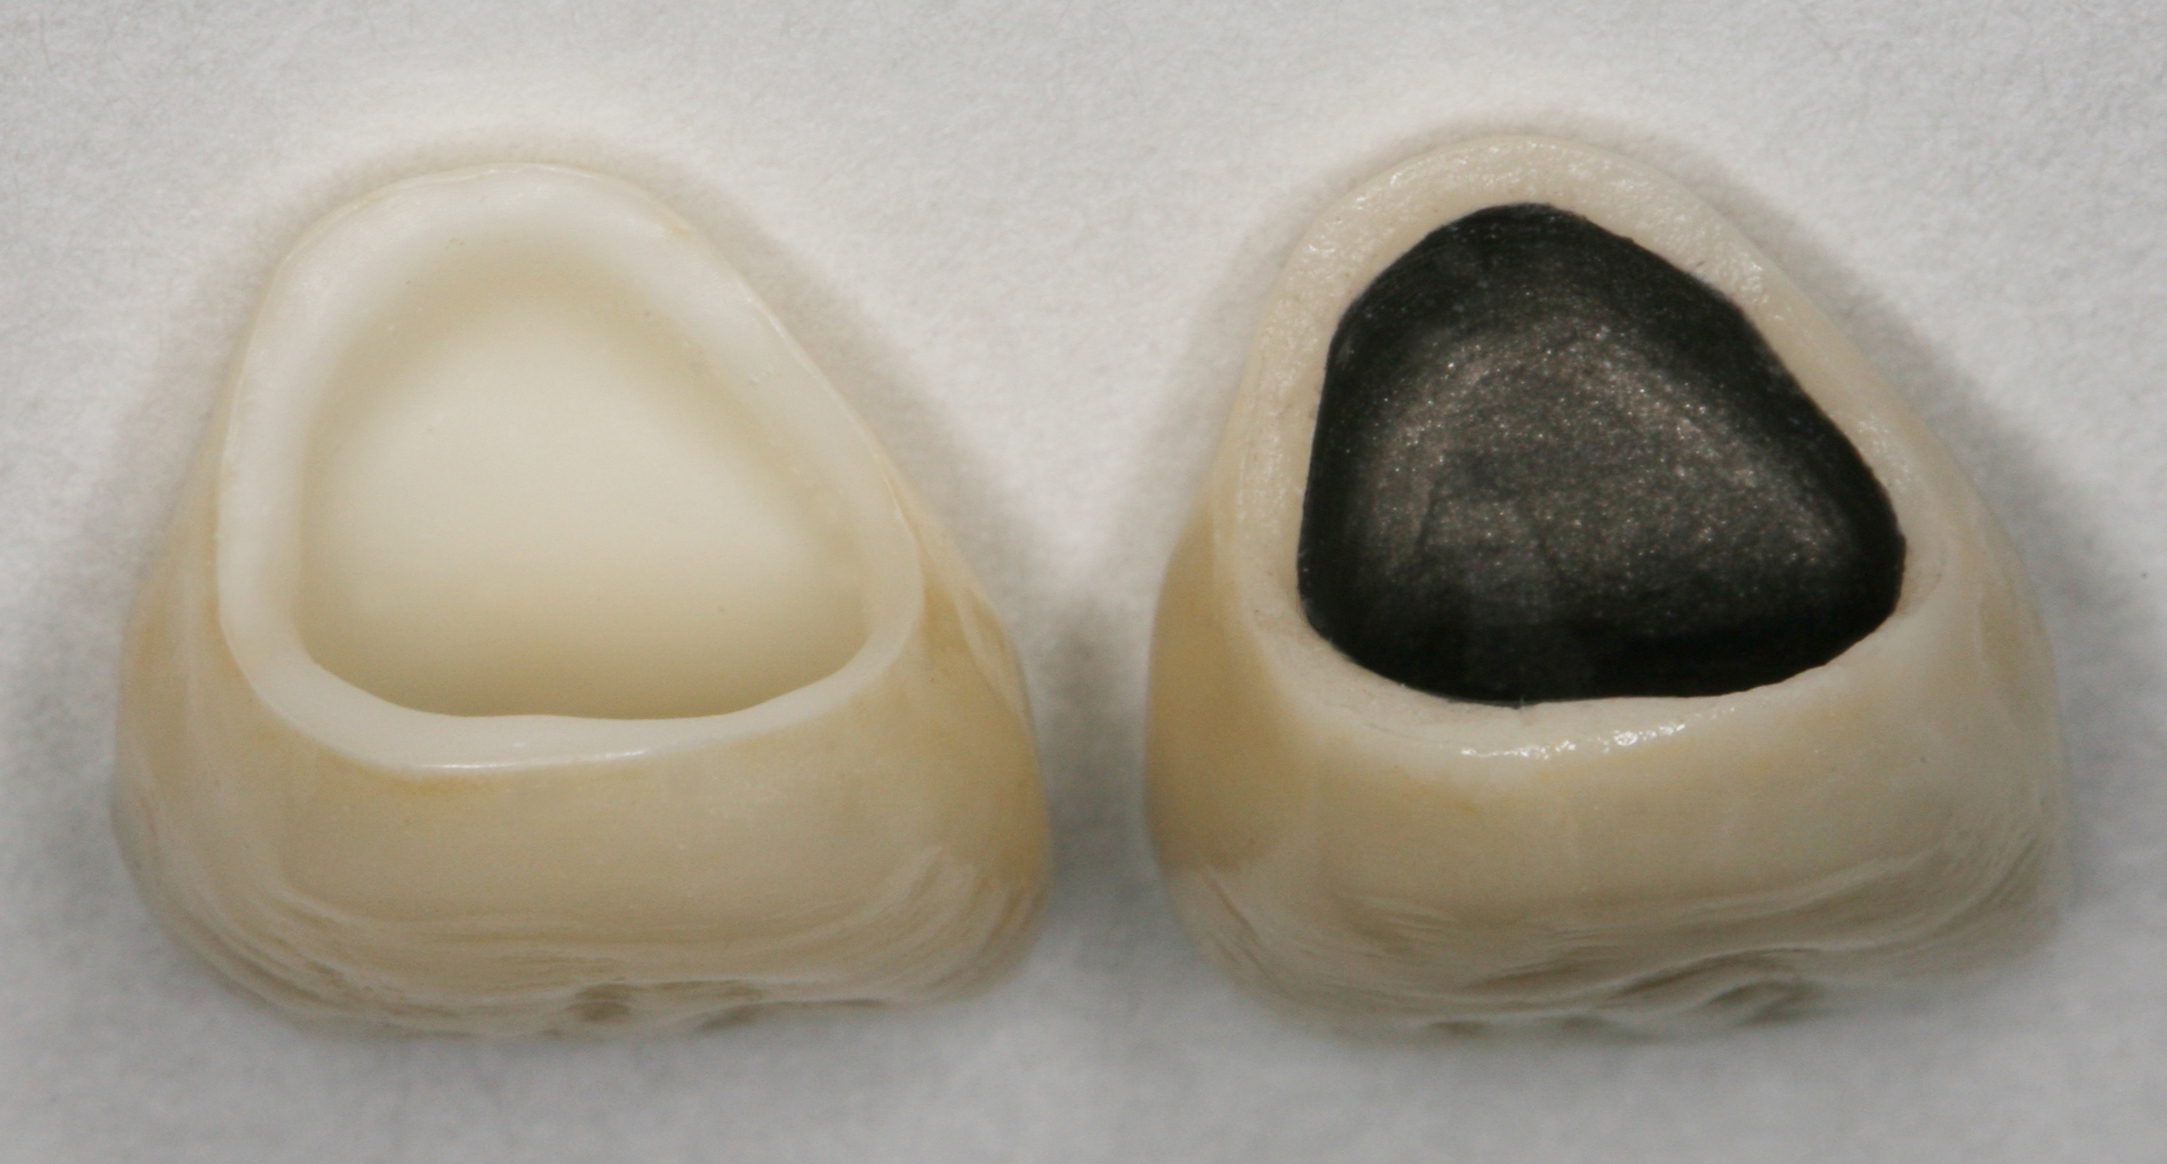 Metal Ceramic Post Amp Core And Crown For Maxillary Central